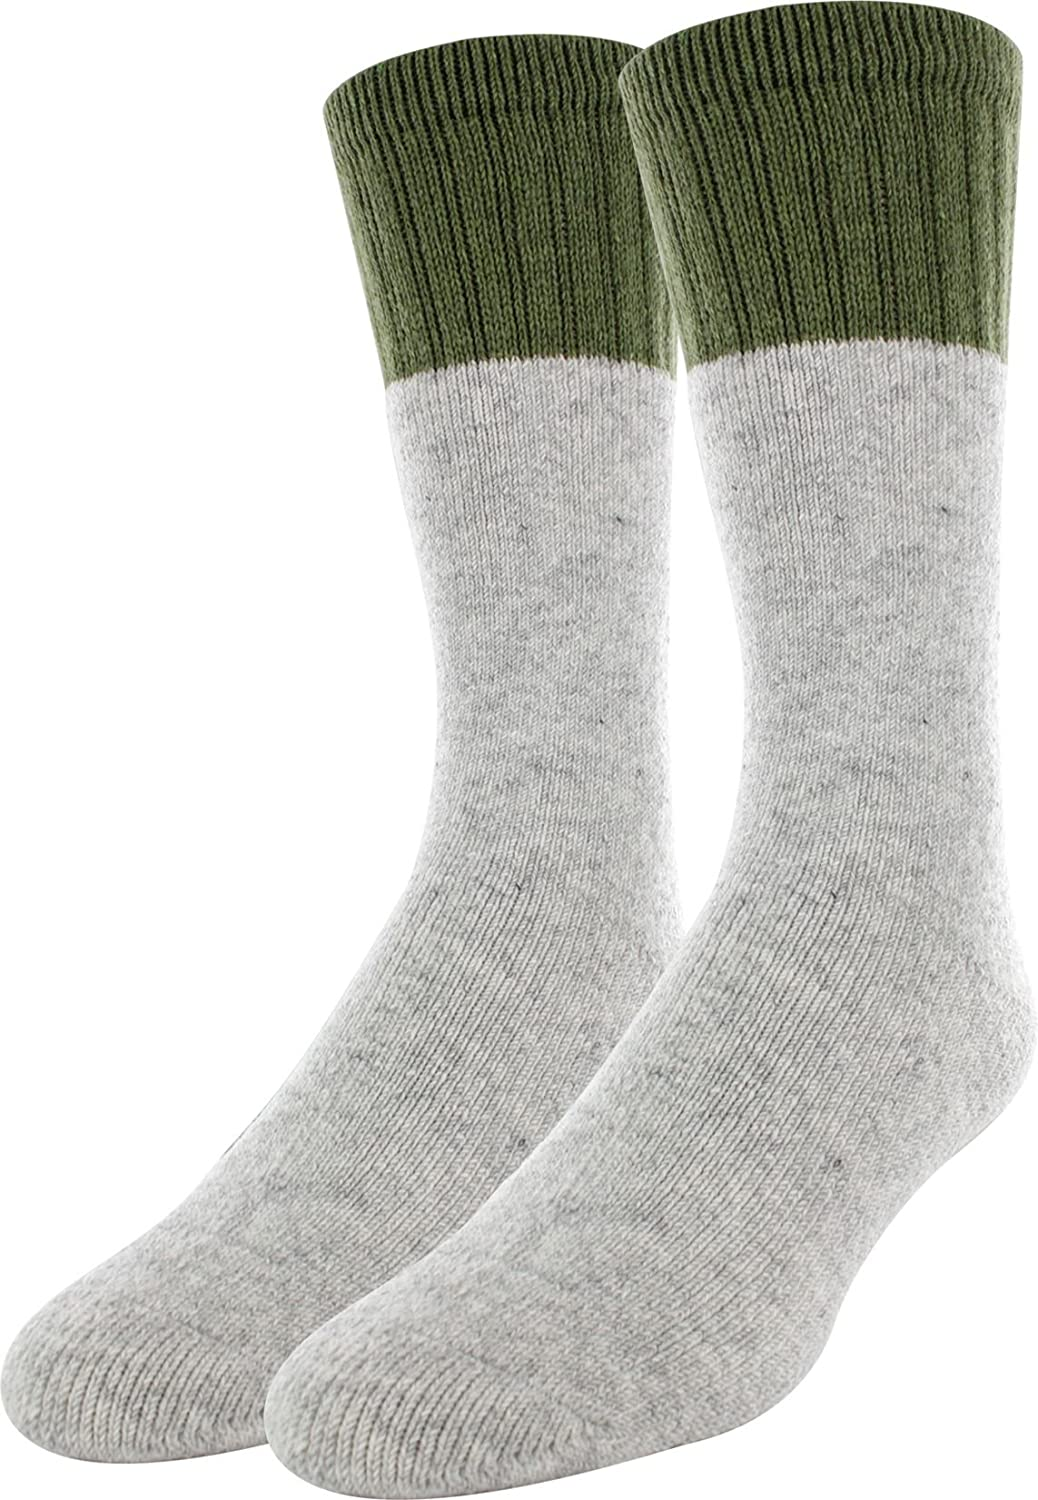 Field & Stream Crew Boot Socks 2 Pack